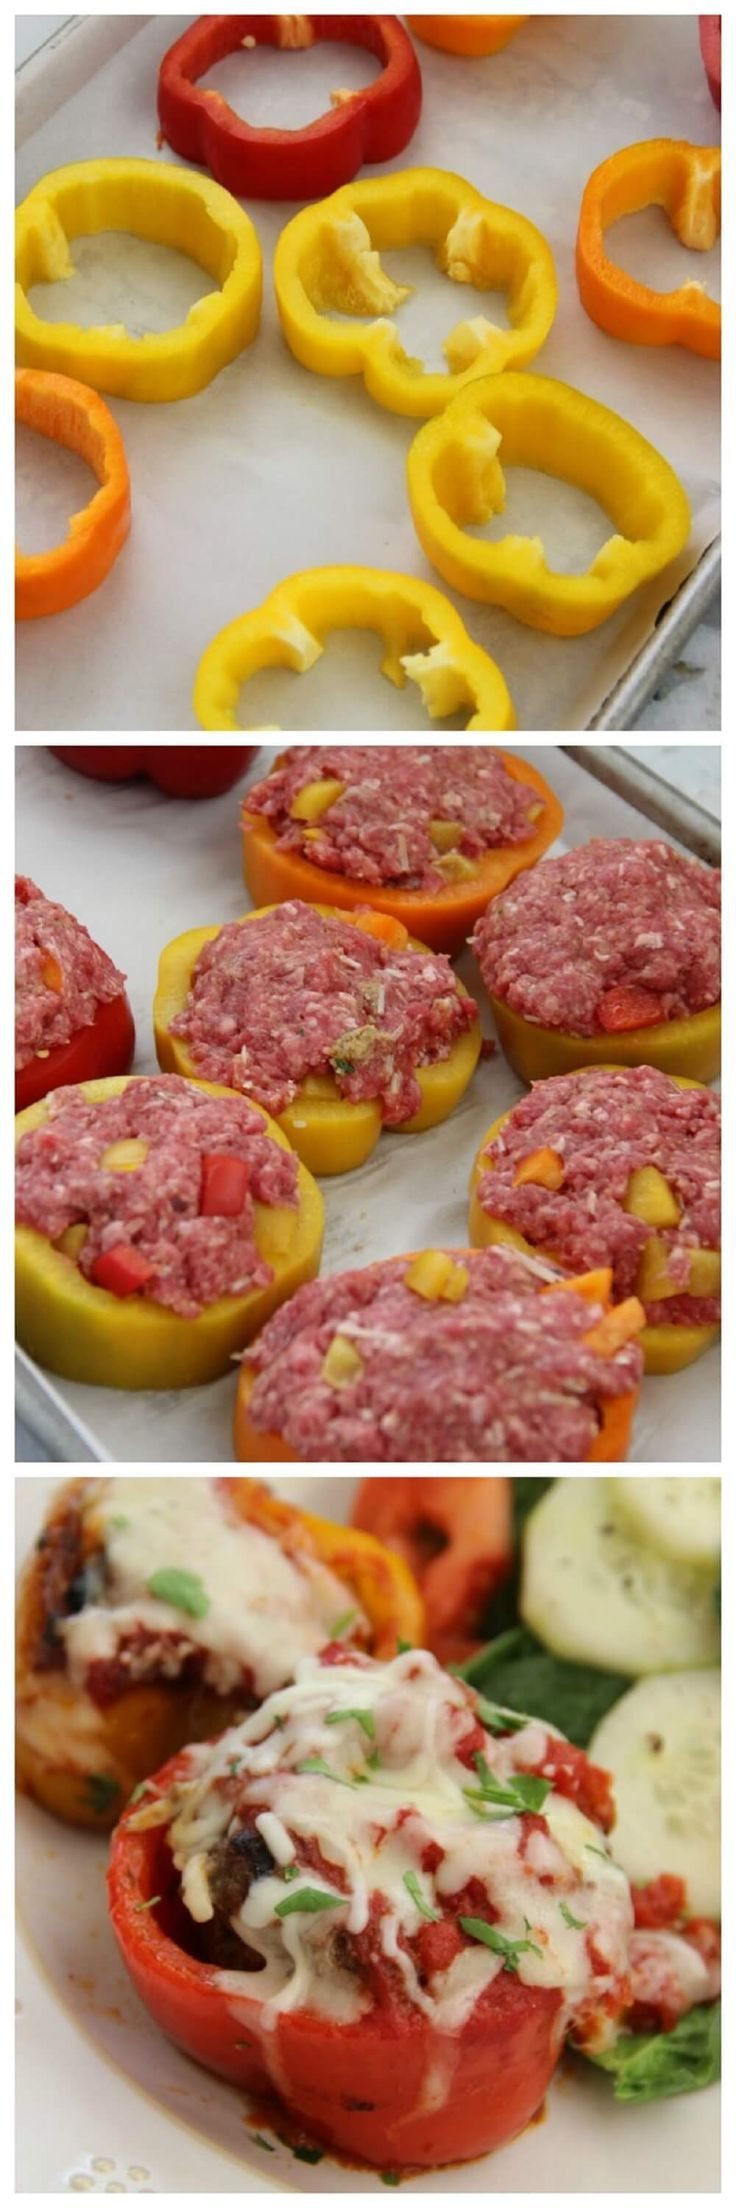 They are a super easy supper to make!  Even though you aren't big on the peppers, yu sure do dig any type of meatball-related dinner. Mini Meatloaf Pepper Rings INGREDIENTS 4 large bell peppers (re…